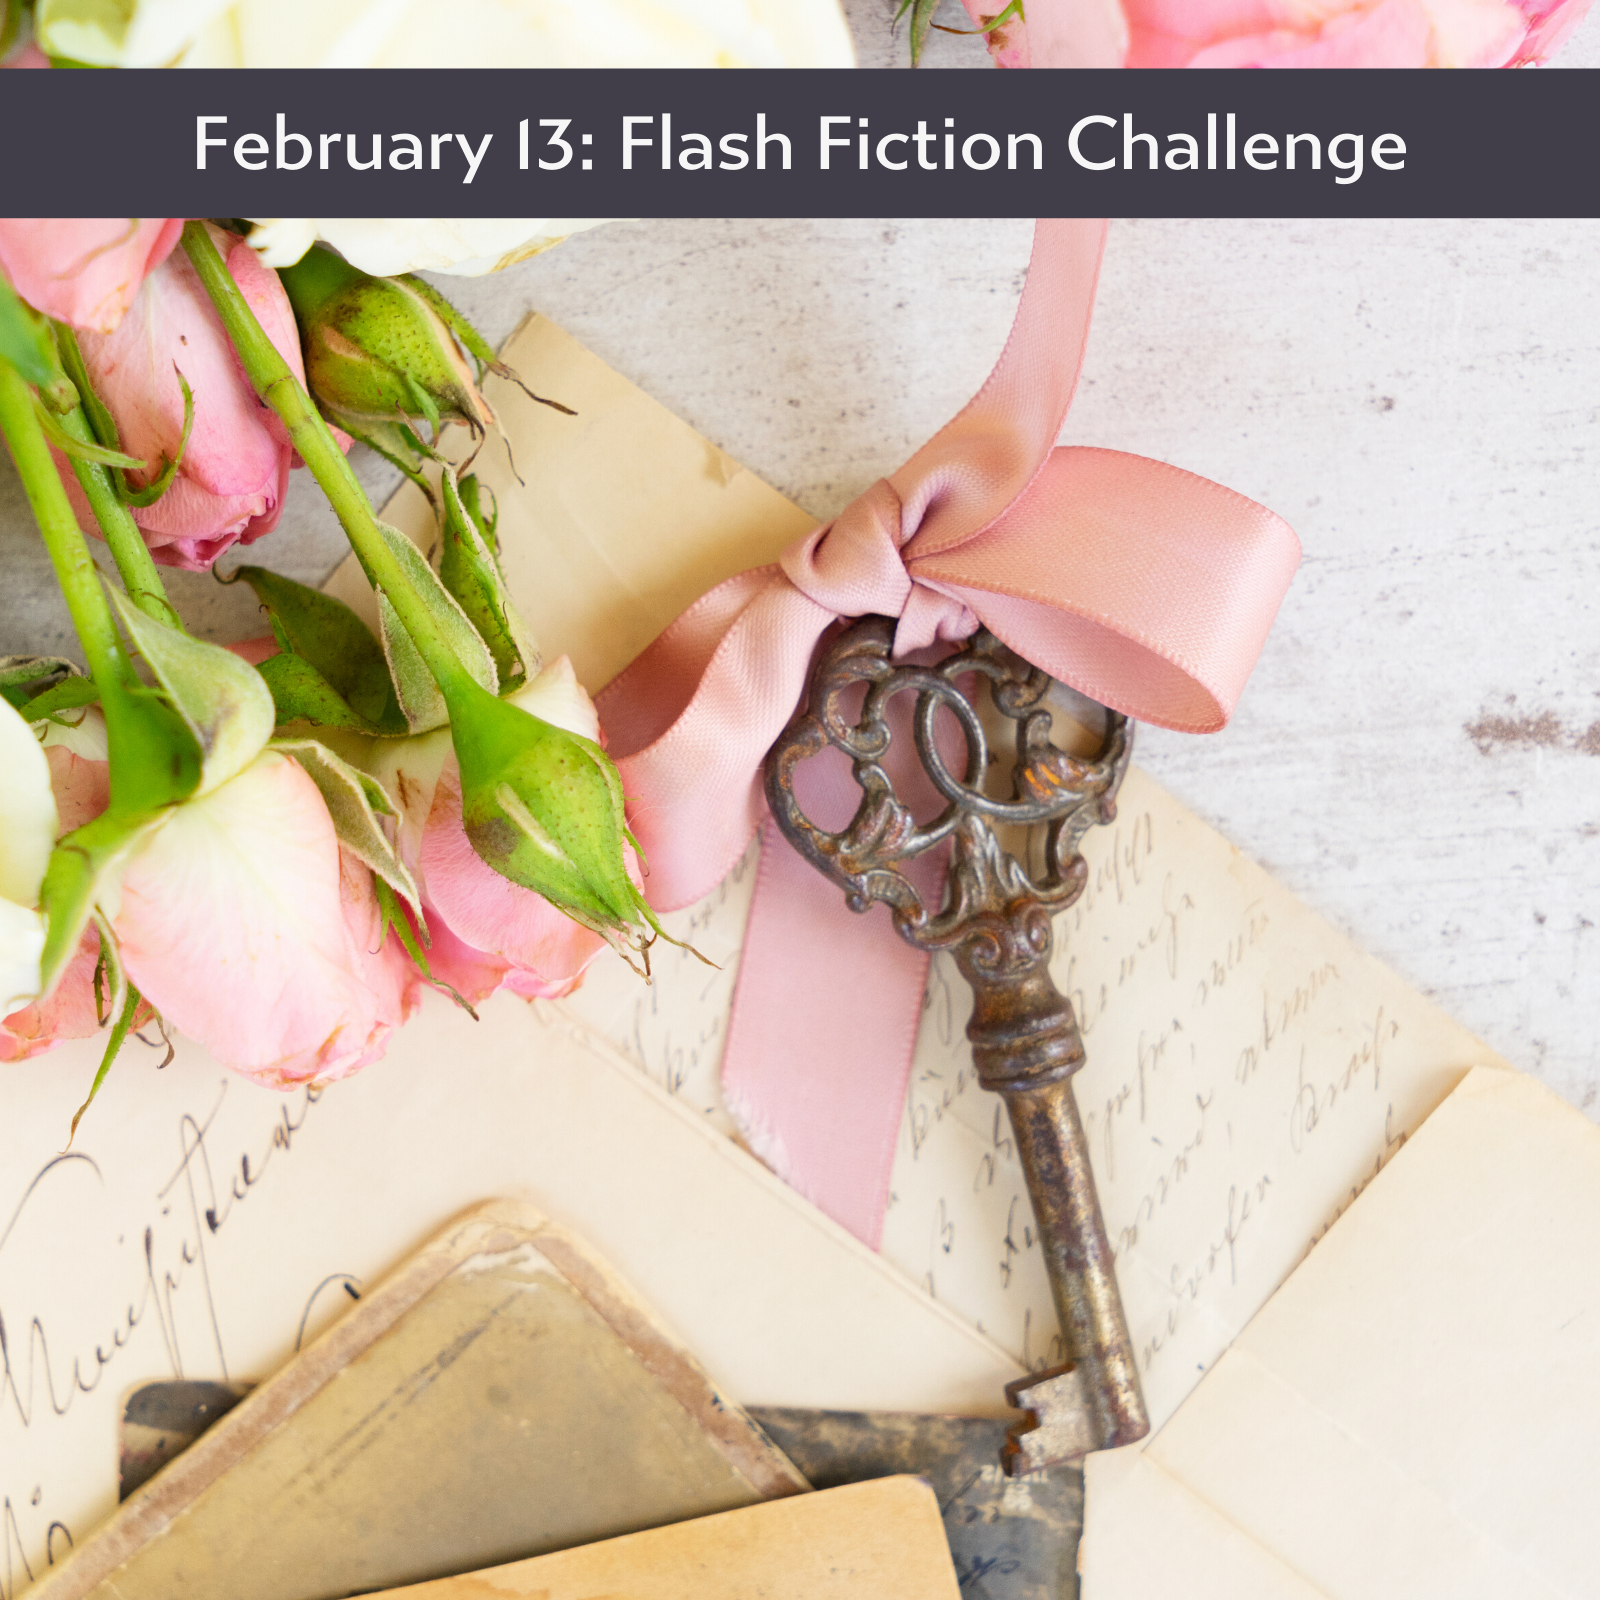 February 13: Flash Fiction Challeng